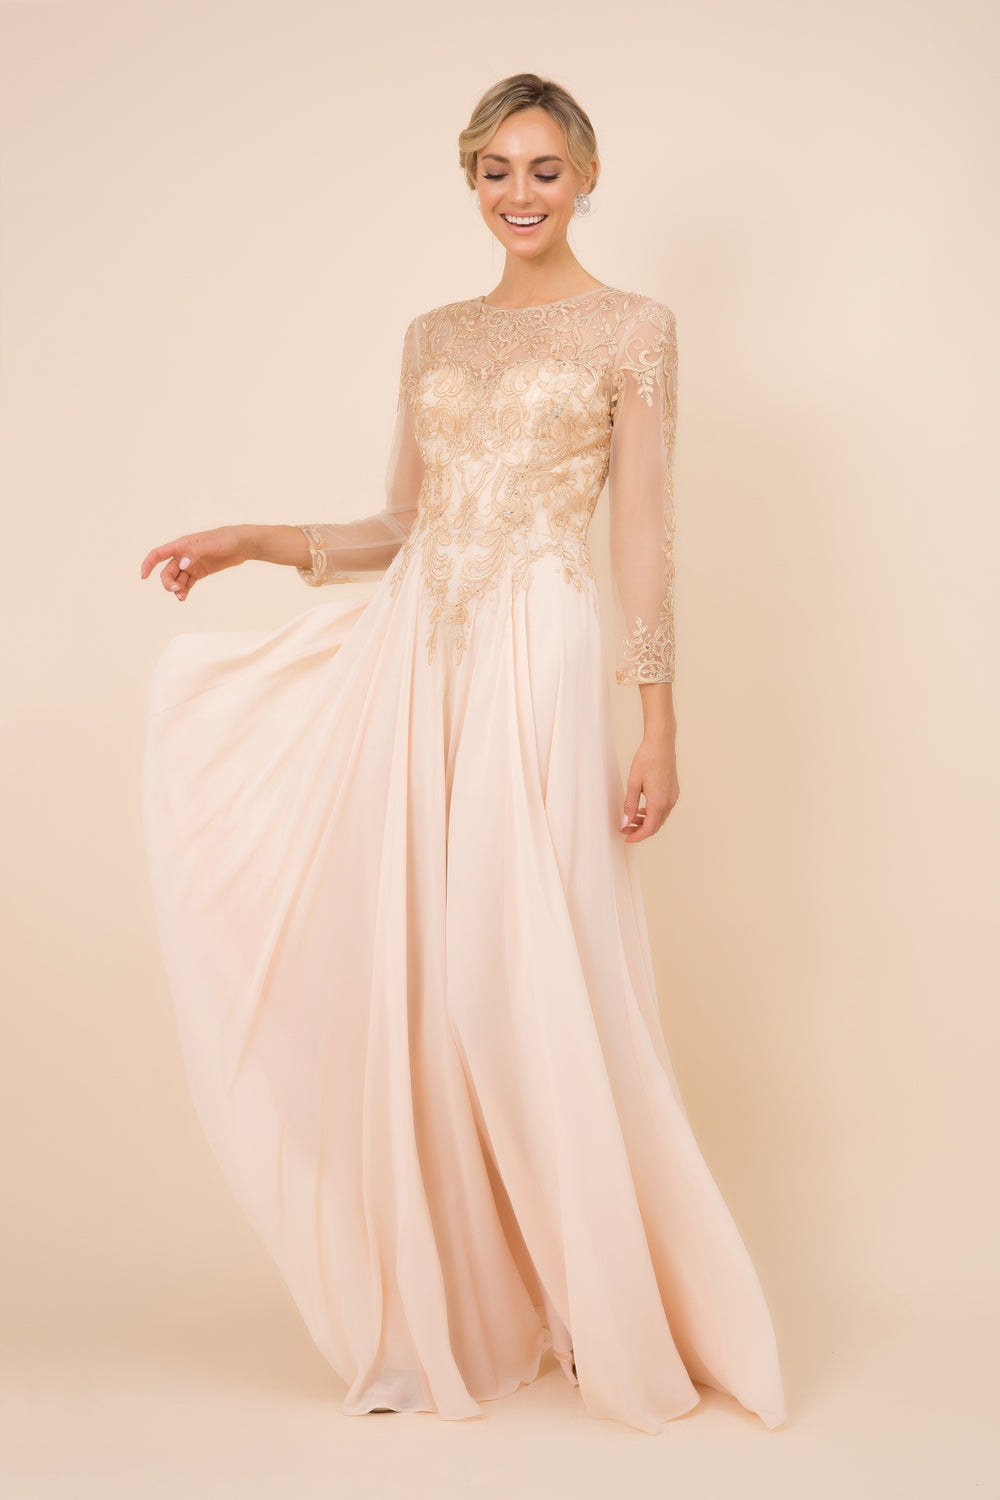 H529 - 3/4TH SLEEVE CHIFFON GOWN WITH FLOOR LENGTH SKIRT_H529 BY NARIANNA